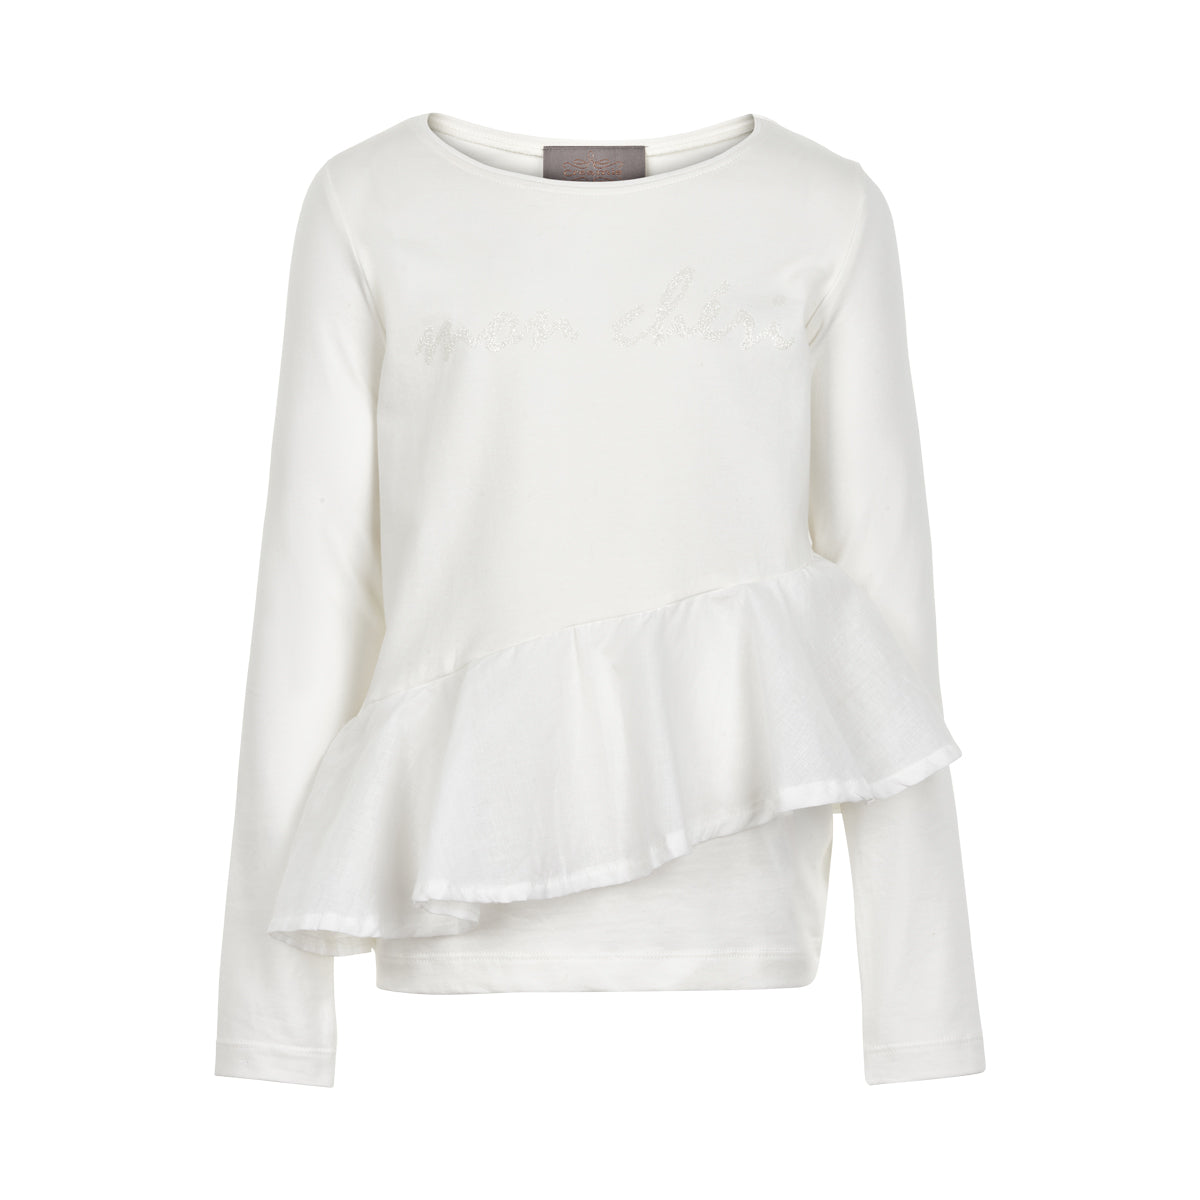 Creamie - T-shirt LS Ruffle (820765) - Cloud